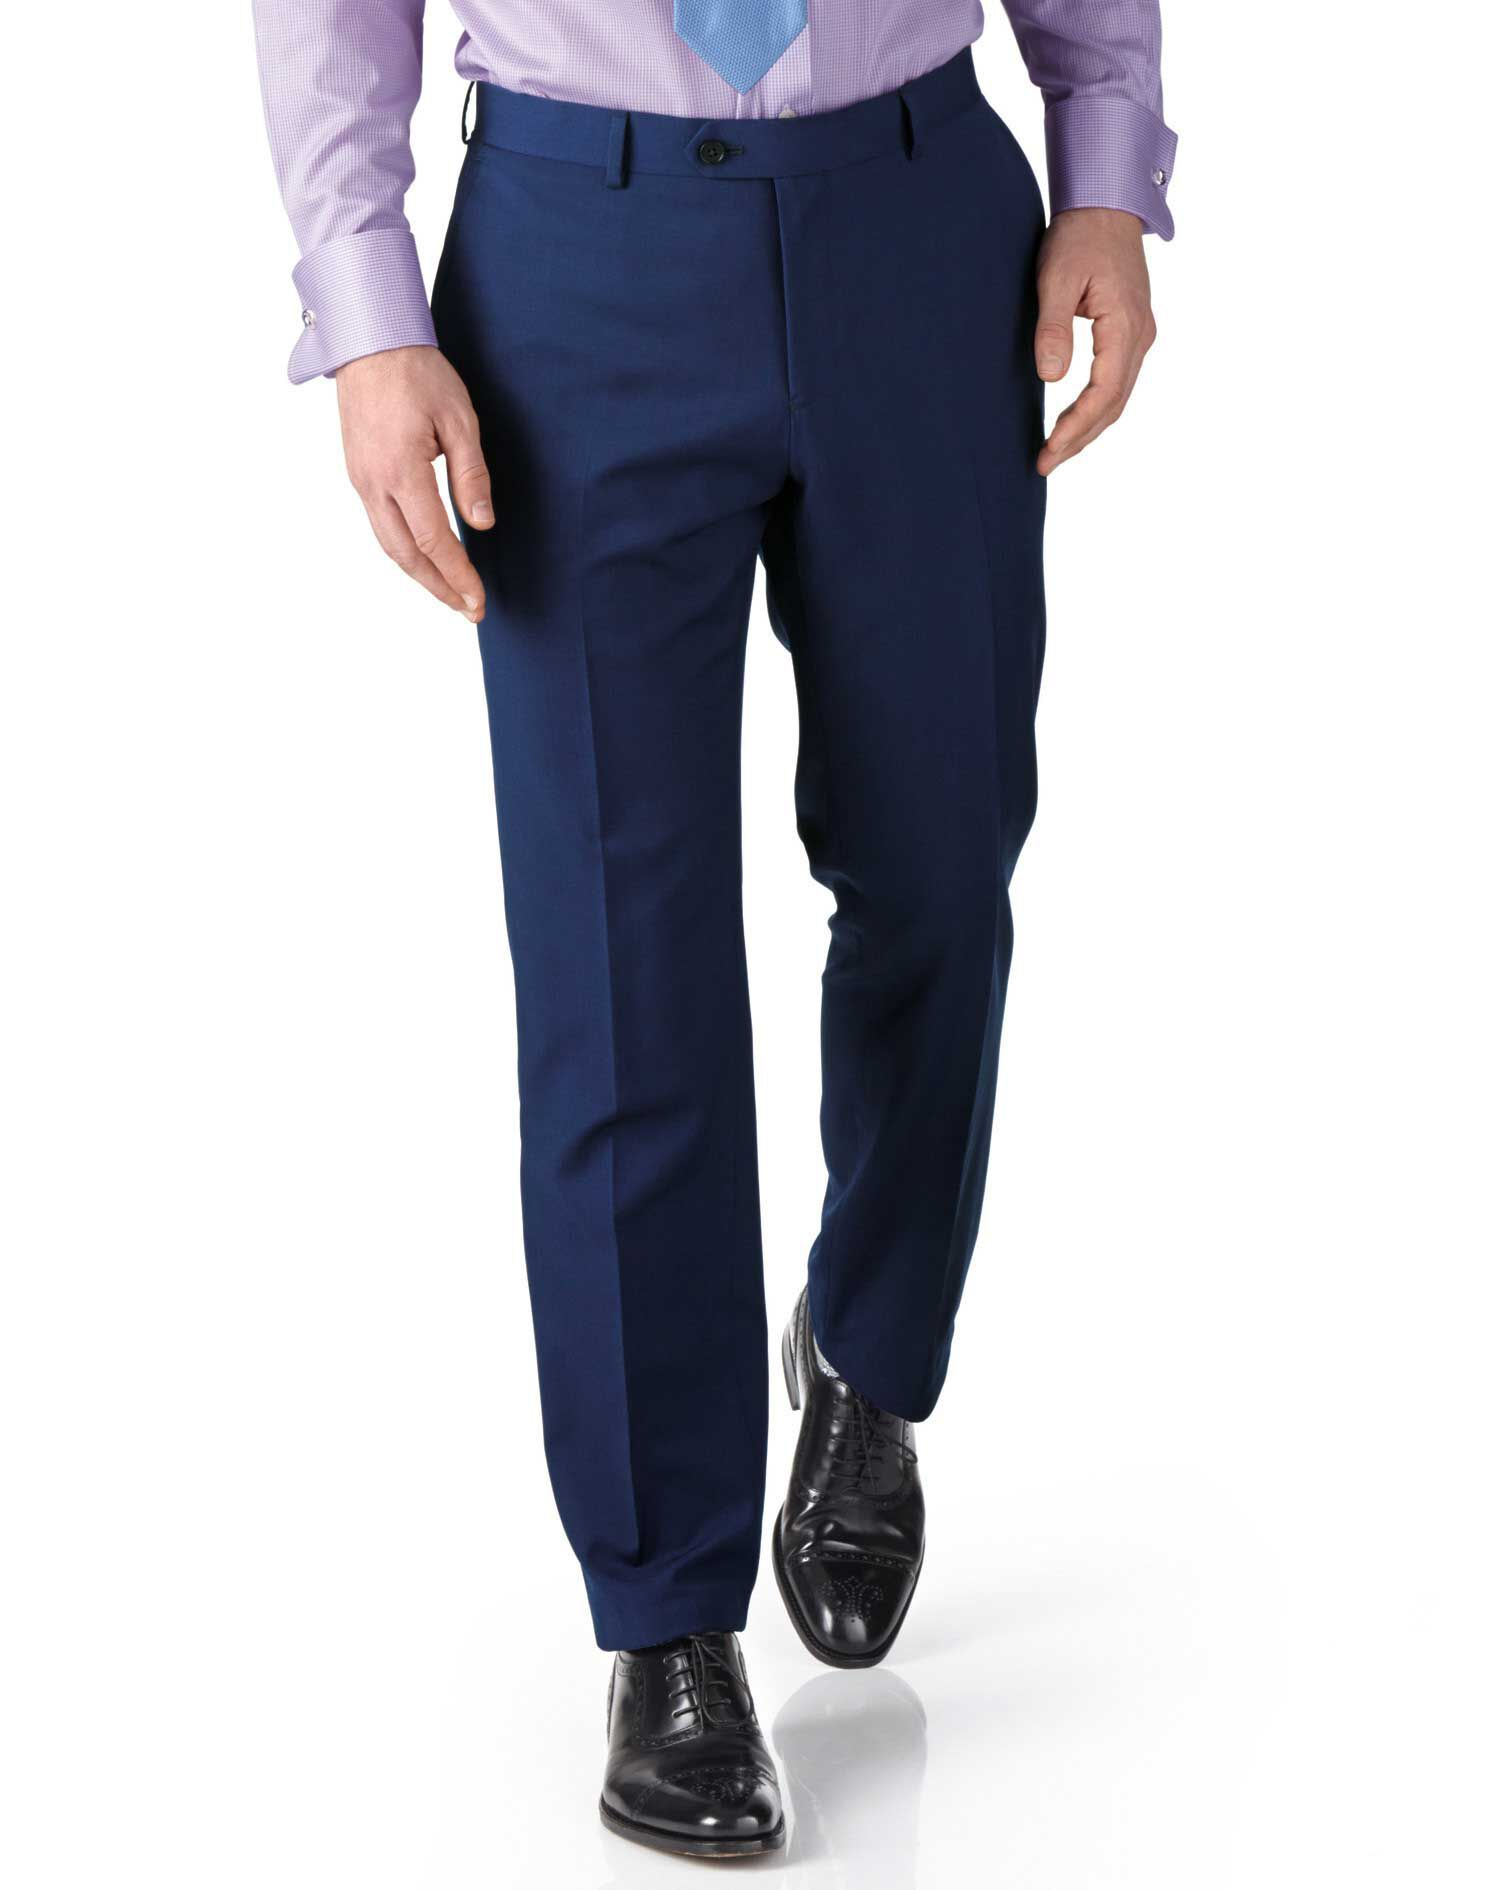 Royal Extra Slim Fit Twill Business Suit Trousers Size W36 L34 by Charles Tyrwhitt